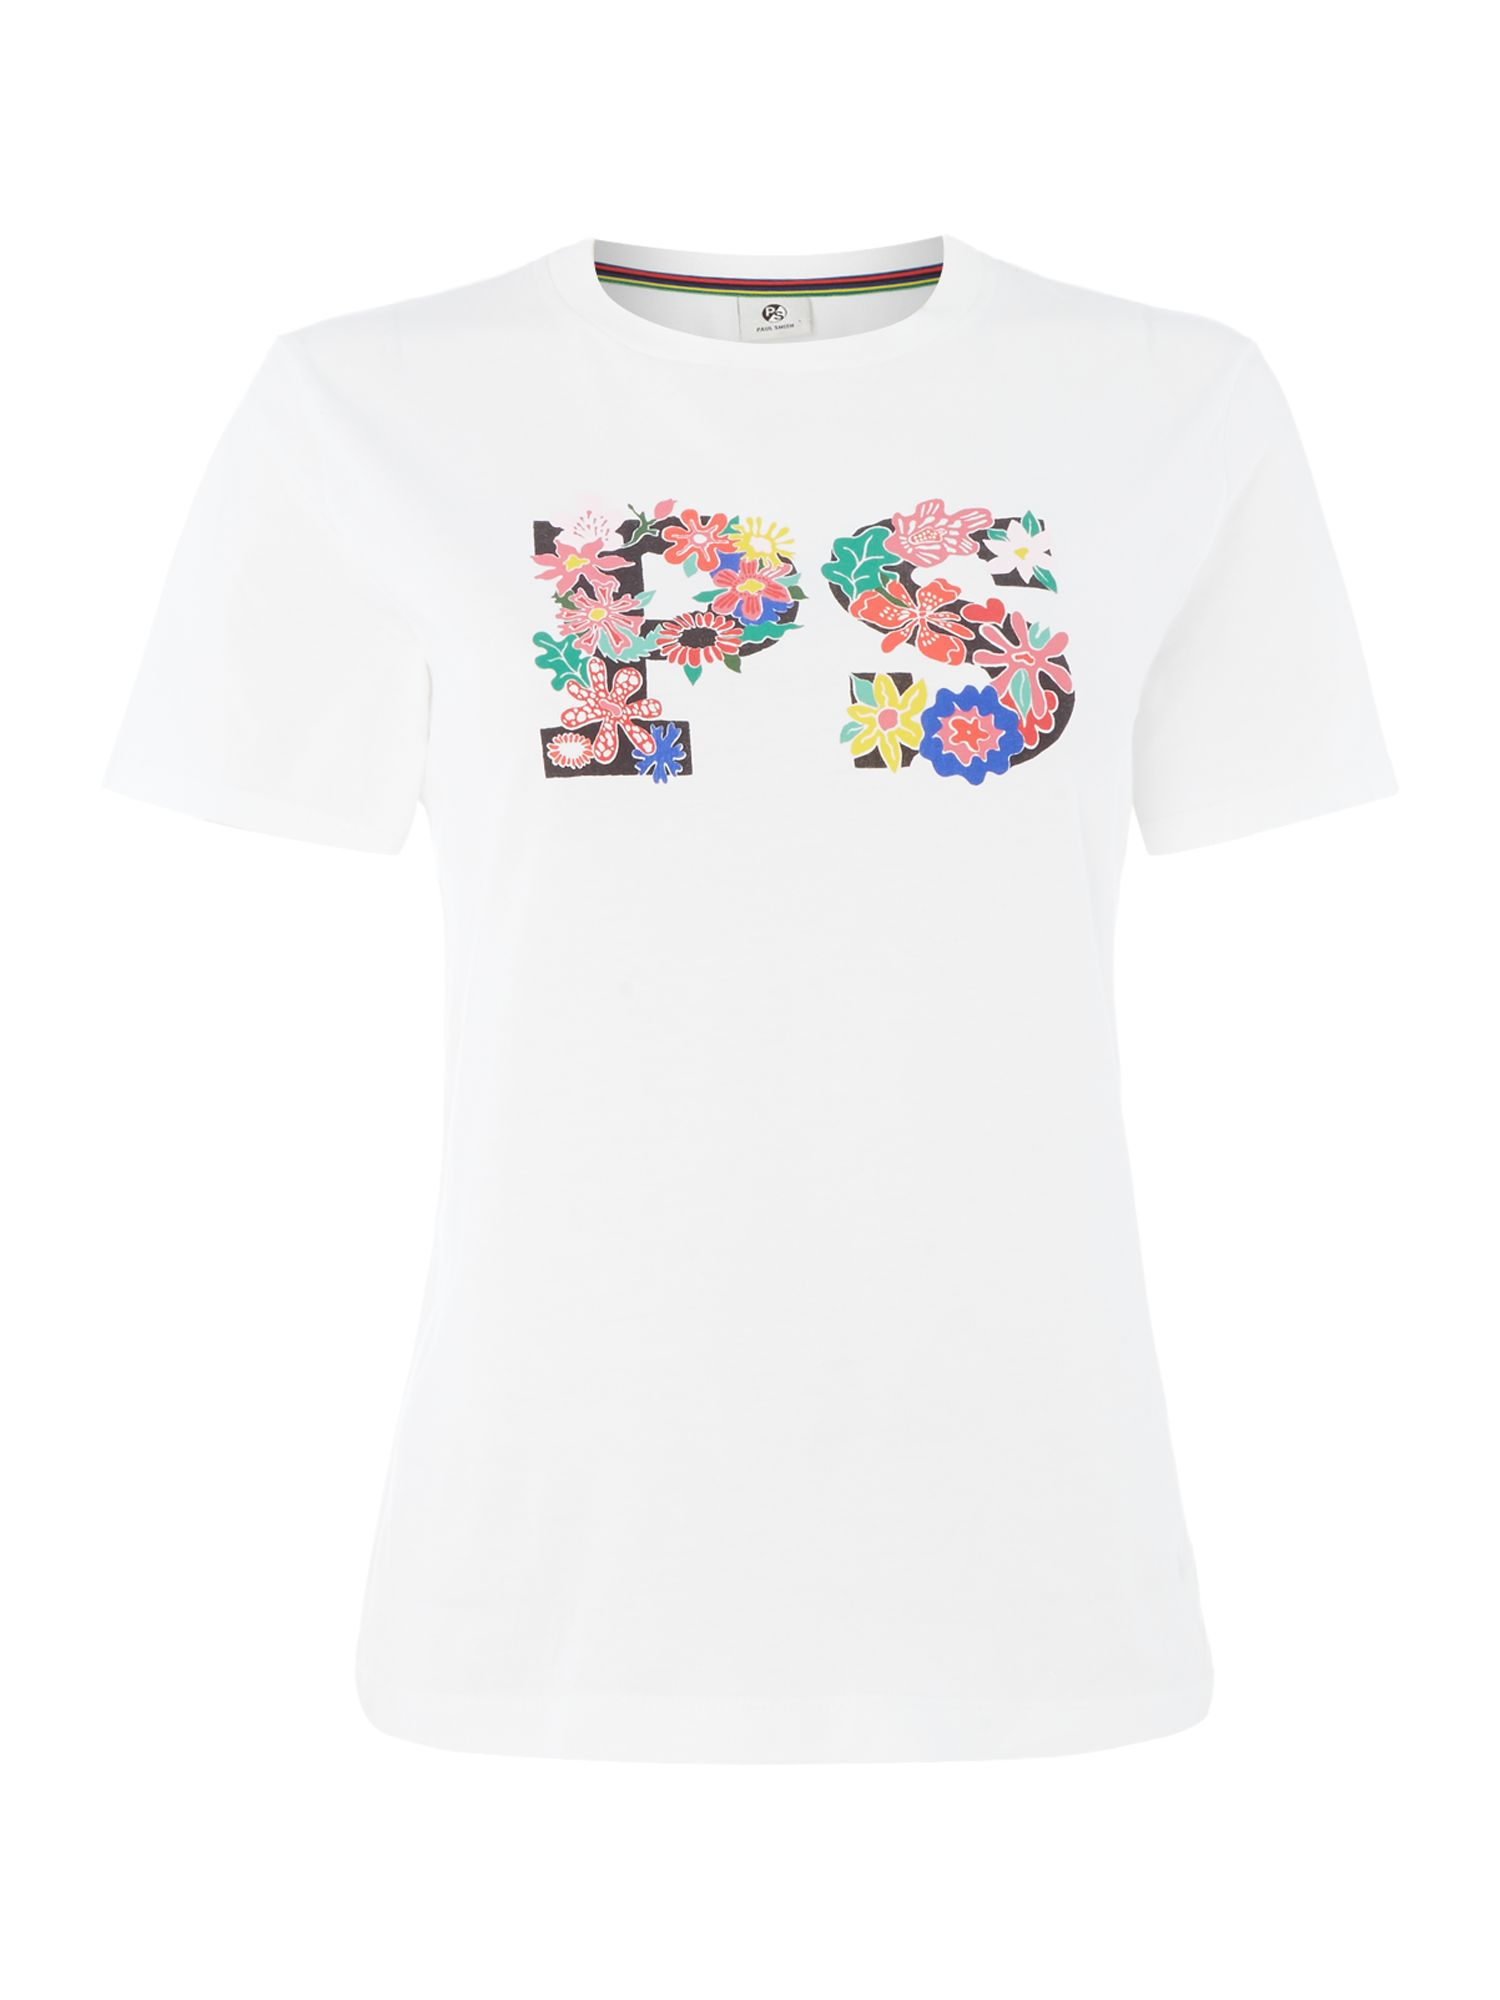 PS By Paul Smith PS T-Shirt, White